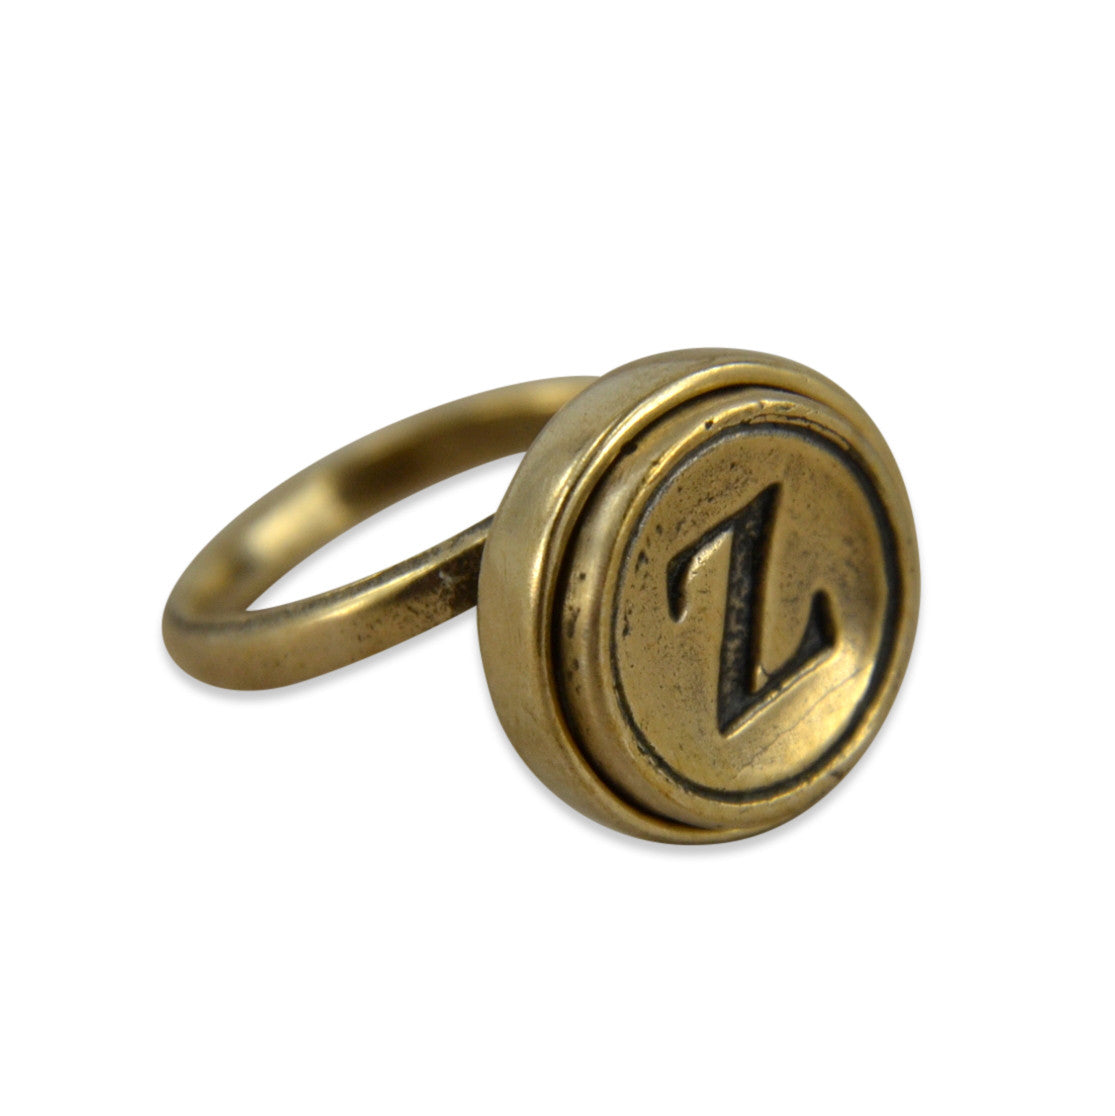 Personalized Letter Ring - Gwen Delicious Jewelry Designs